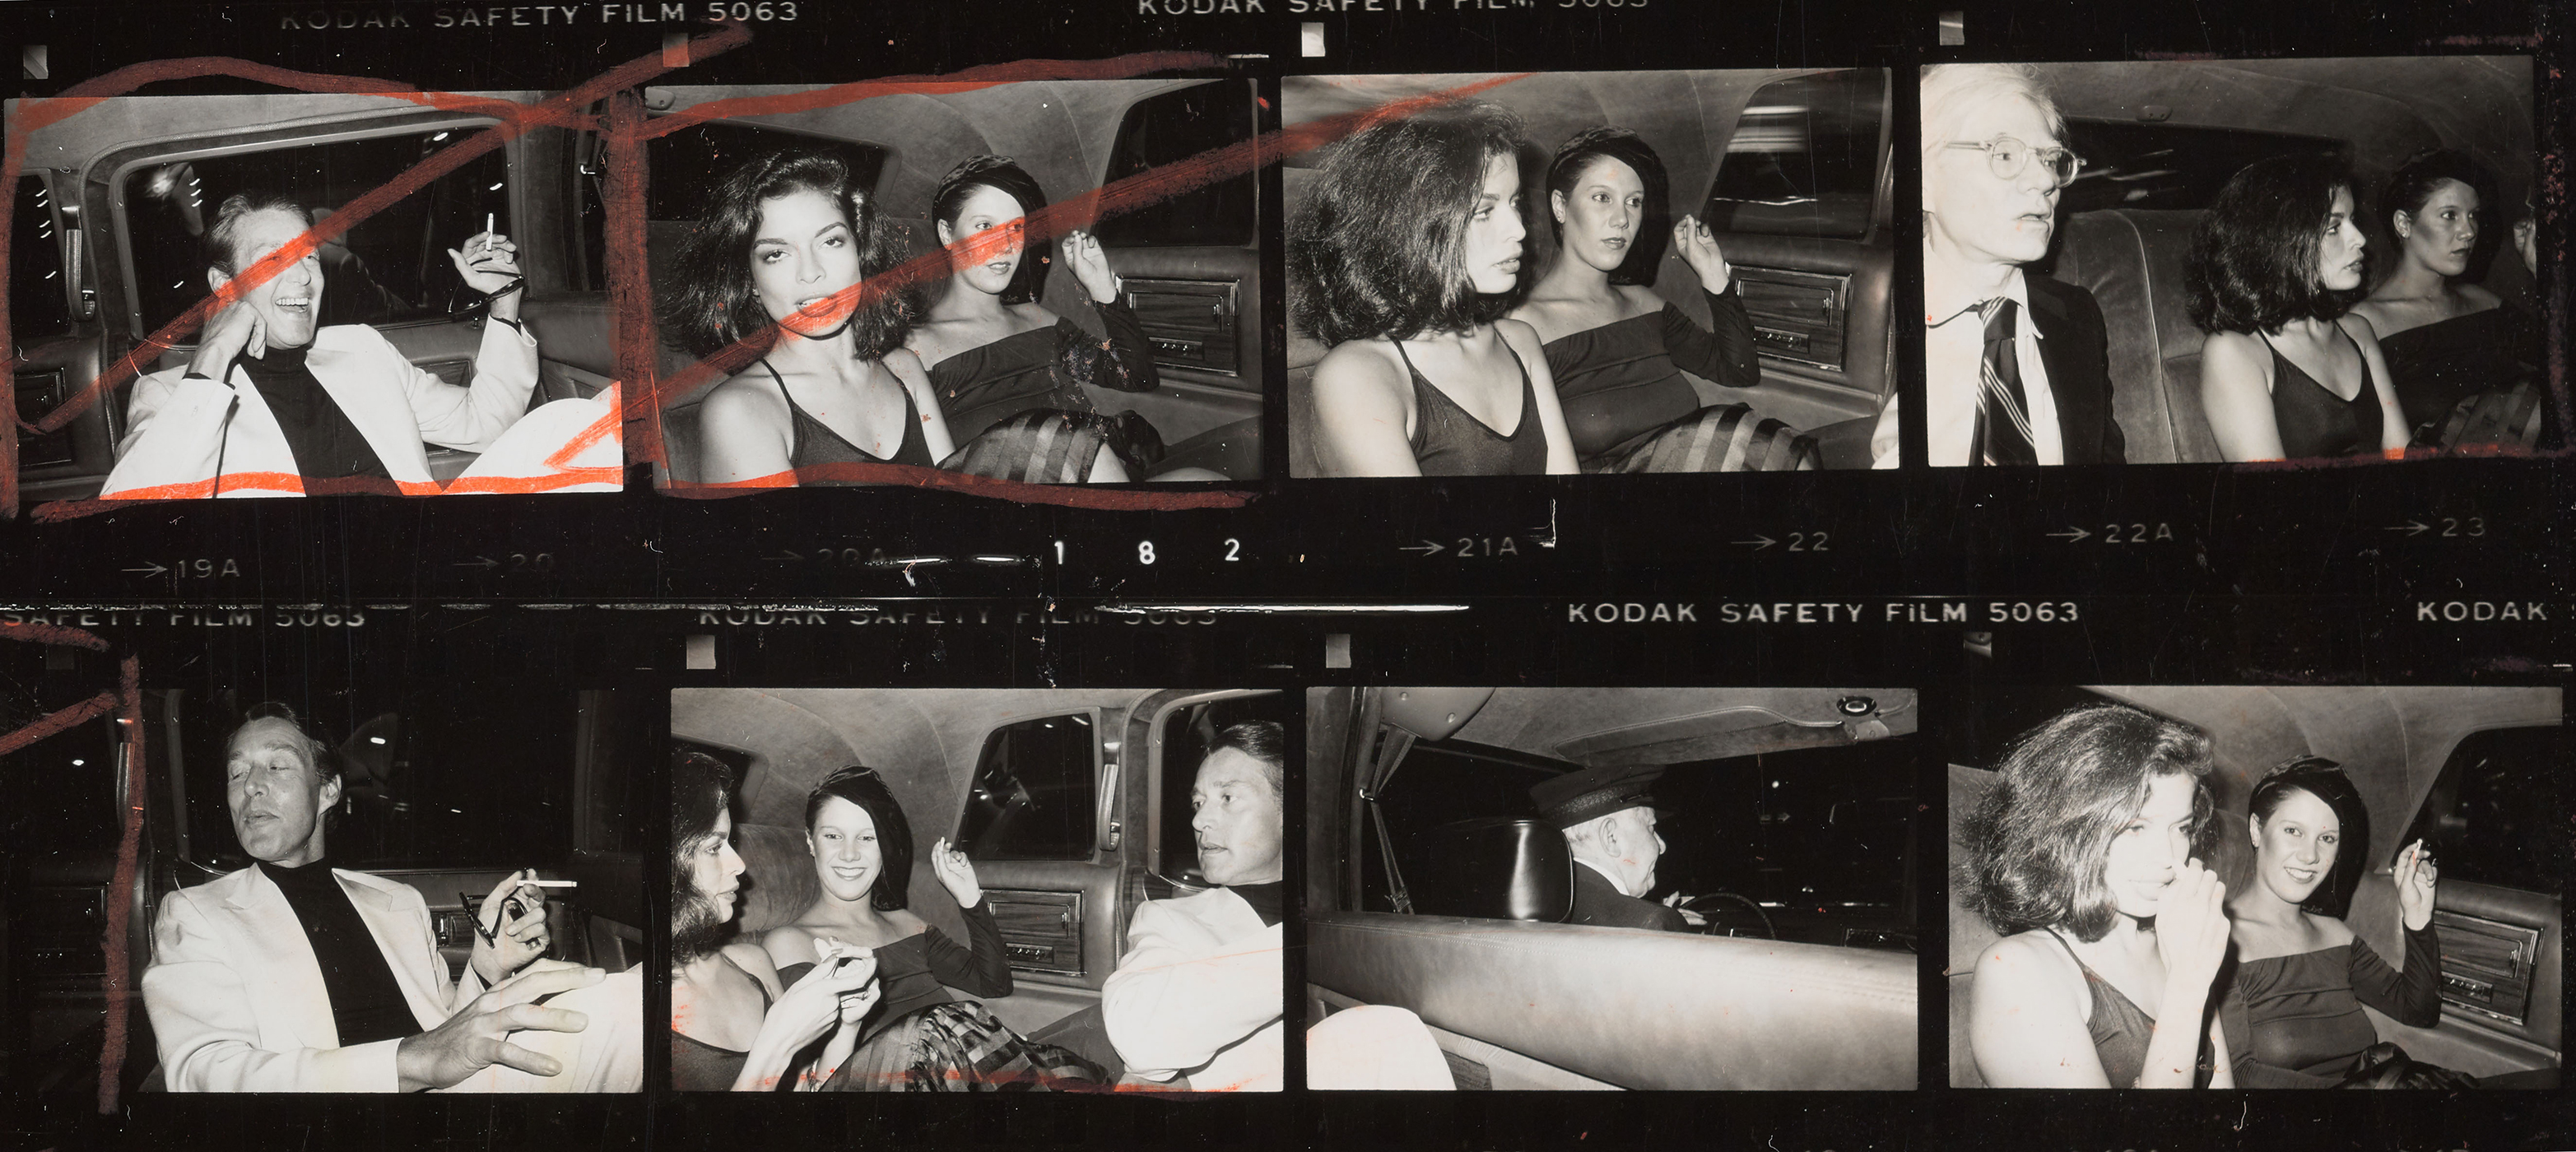 Andy Warhol contact sheet with celebrities in limousine